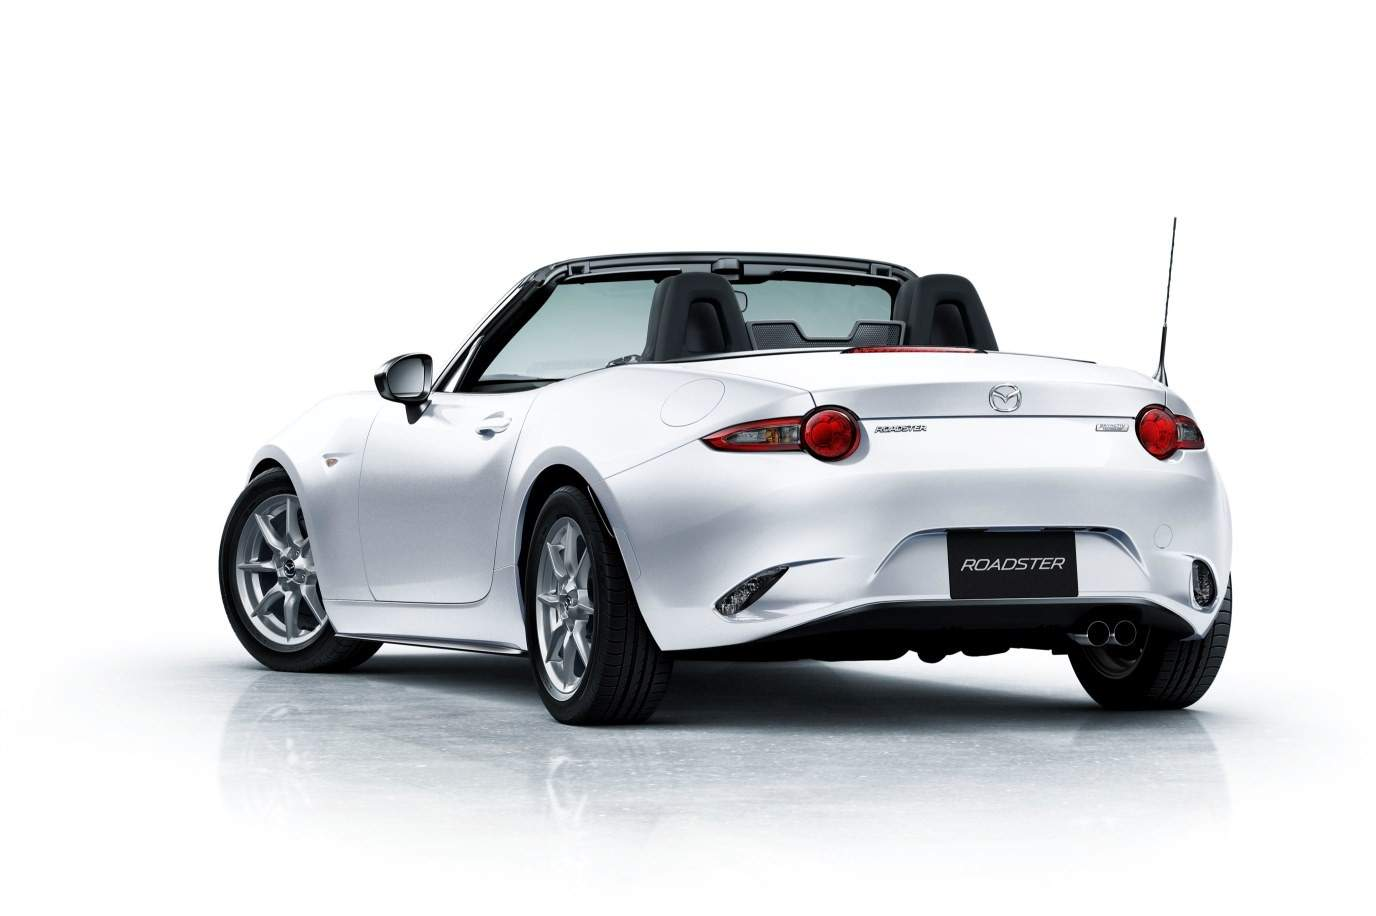 mazda-unveils-roadster-nr-a-and-mazda2-15mb-in-japan-both-aimed-at-driving-enthusiasts_7